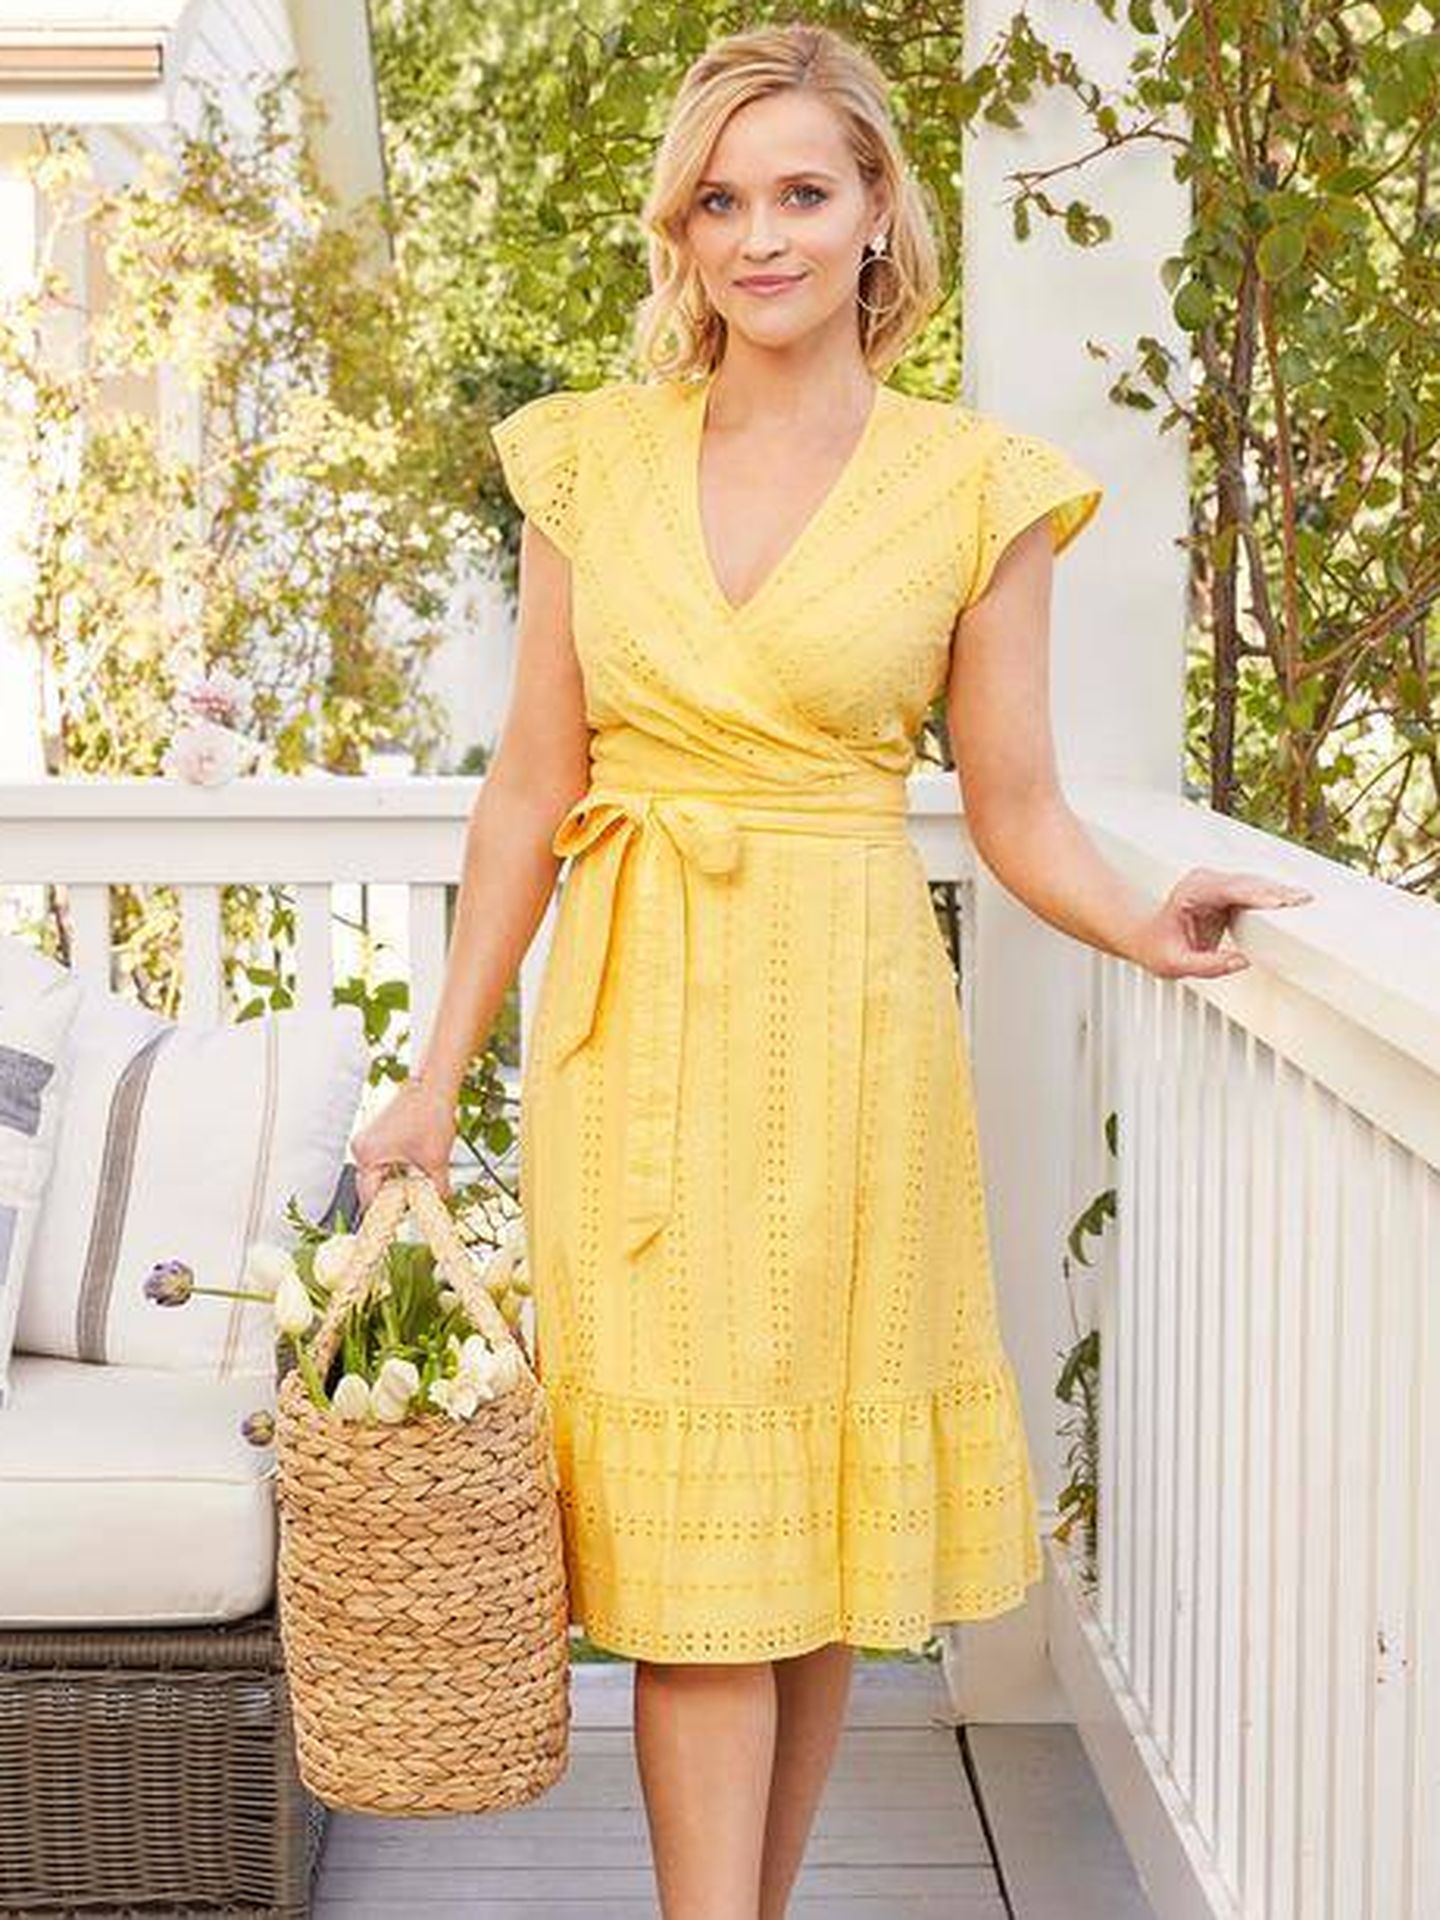 Reese Witherspoon. (Cortesía Draper James)